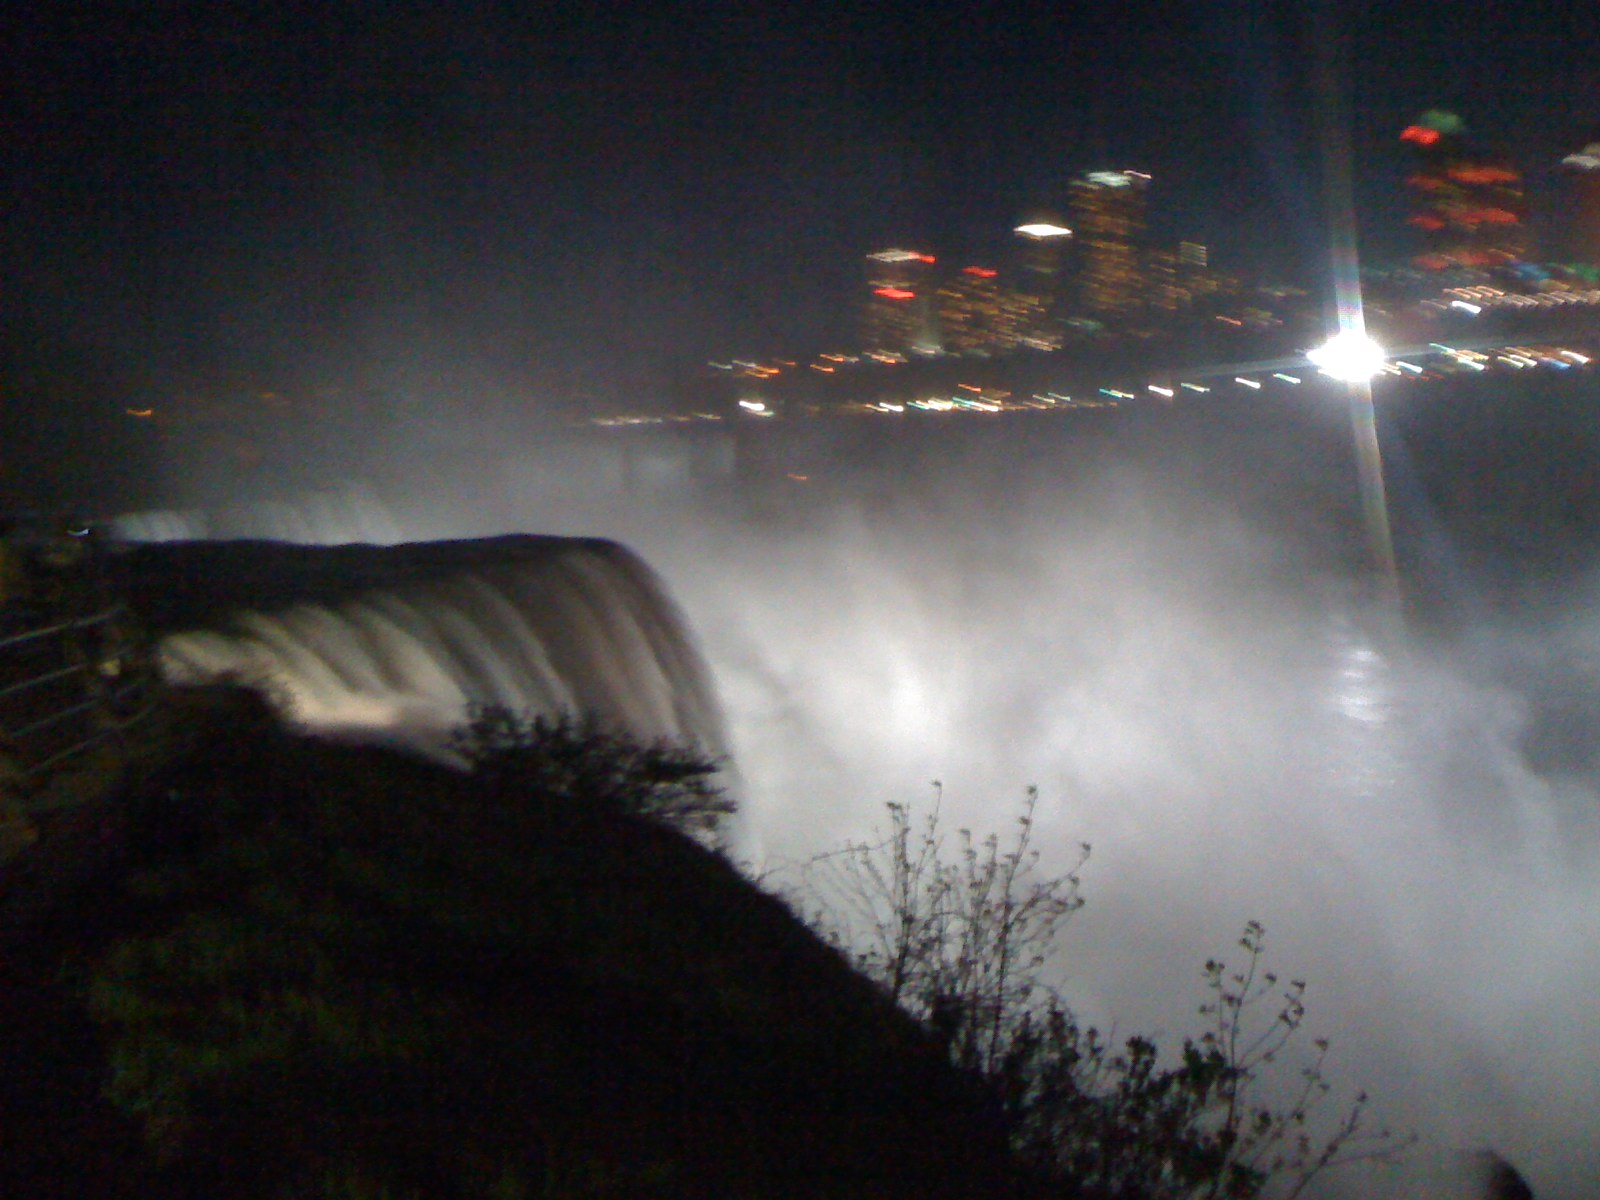 Niagara Falls Flood lit at night